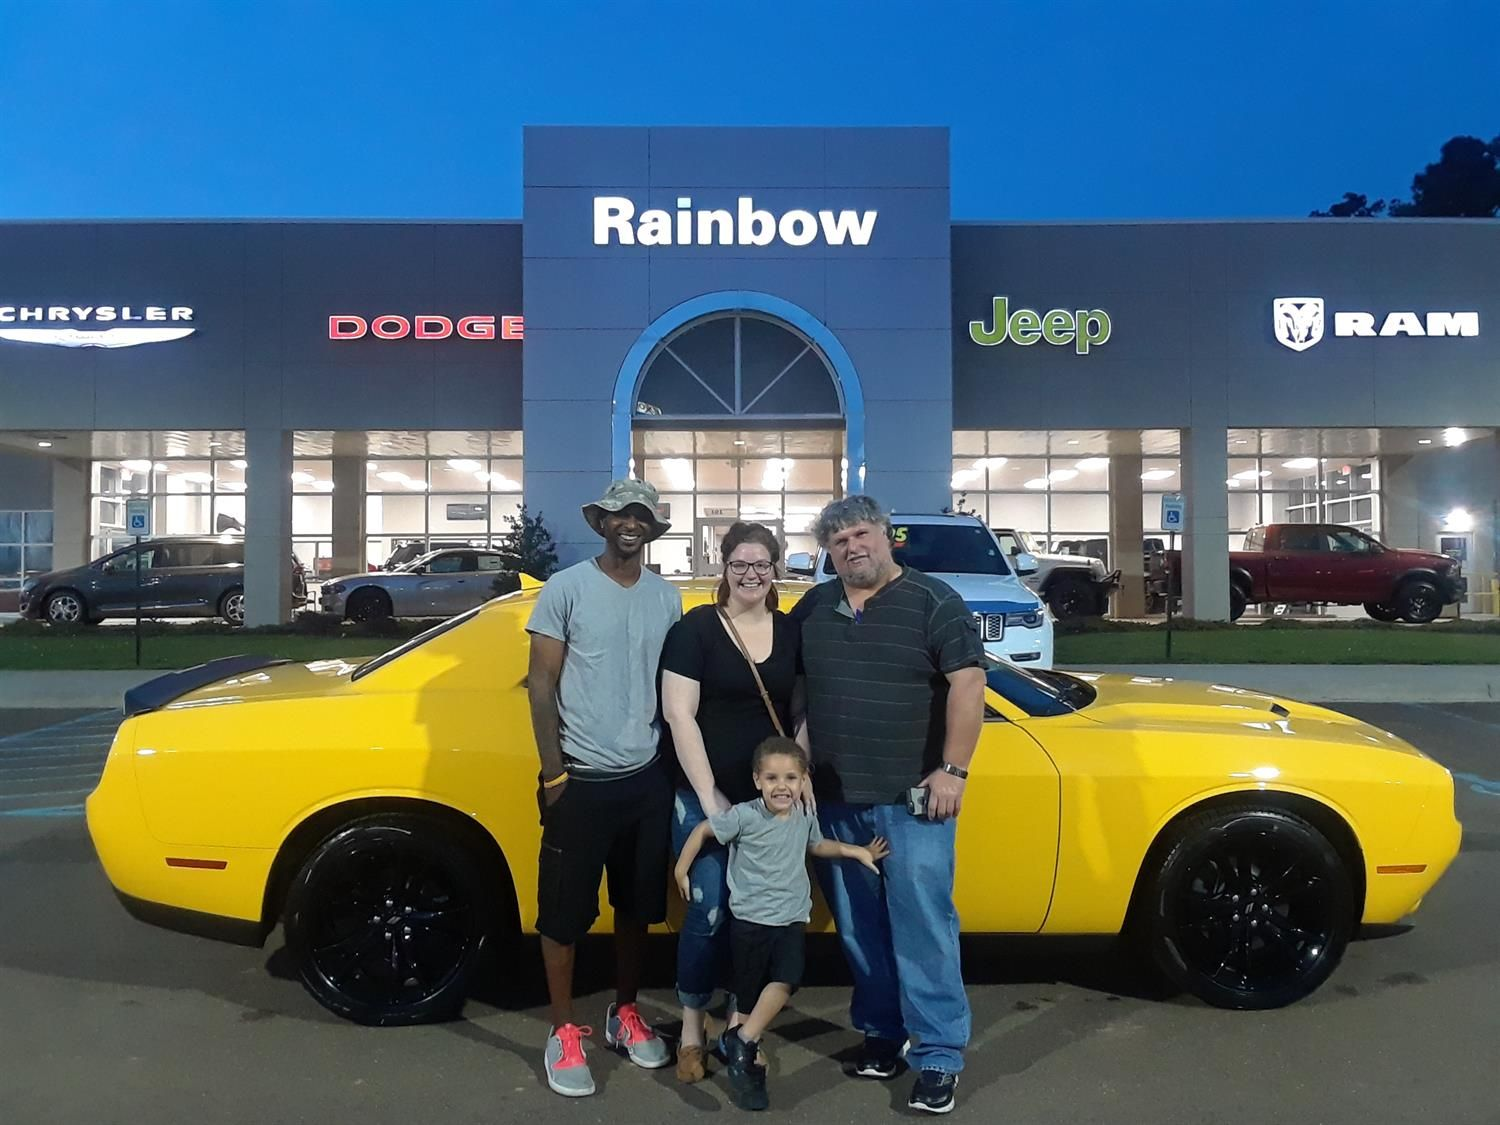 Kristin We Hope You Enjoy Your New 2018 Dodge Challenger Congratulations And Best Wishes From Rainbow Chr Chrysler Dodge Jeep 2018 Dodge Challenger Chrysler